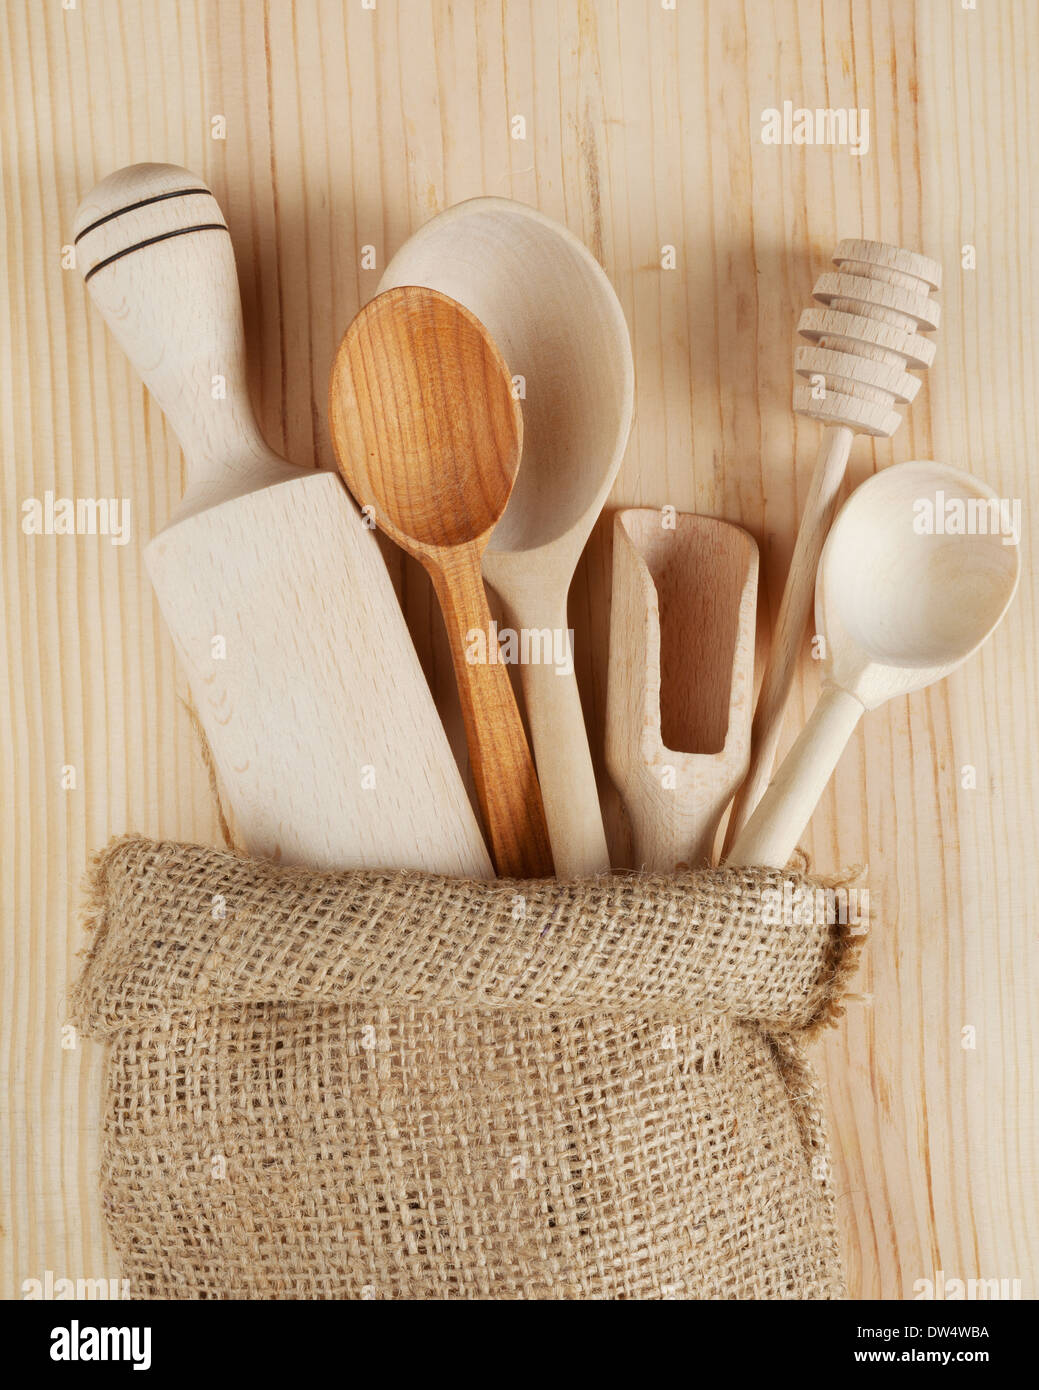 wooden kitchen utensils:spoons, rolling pin, scoop and honey dipper in sack - Stock Image